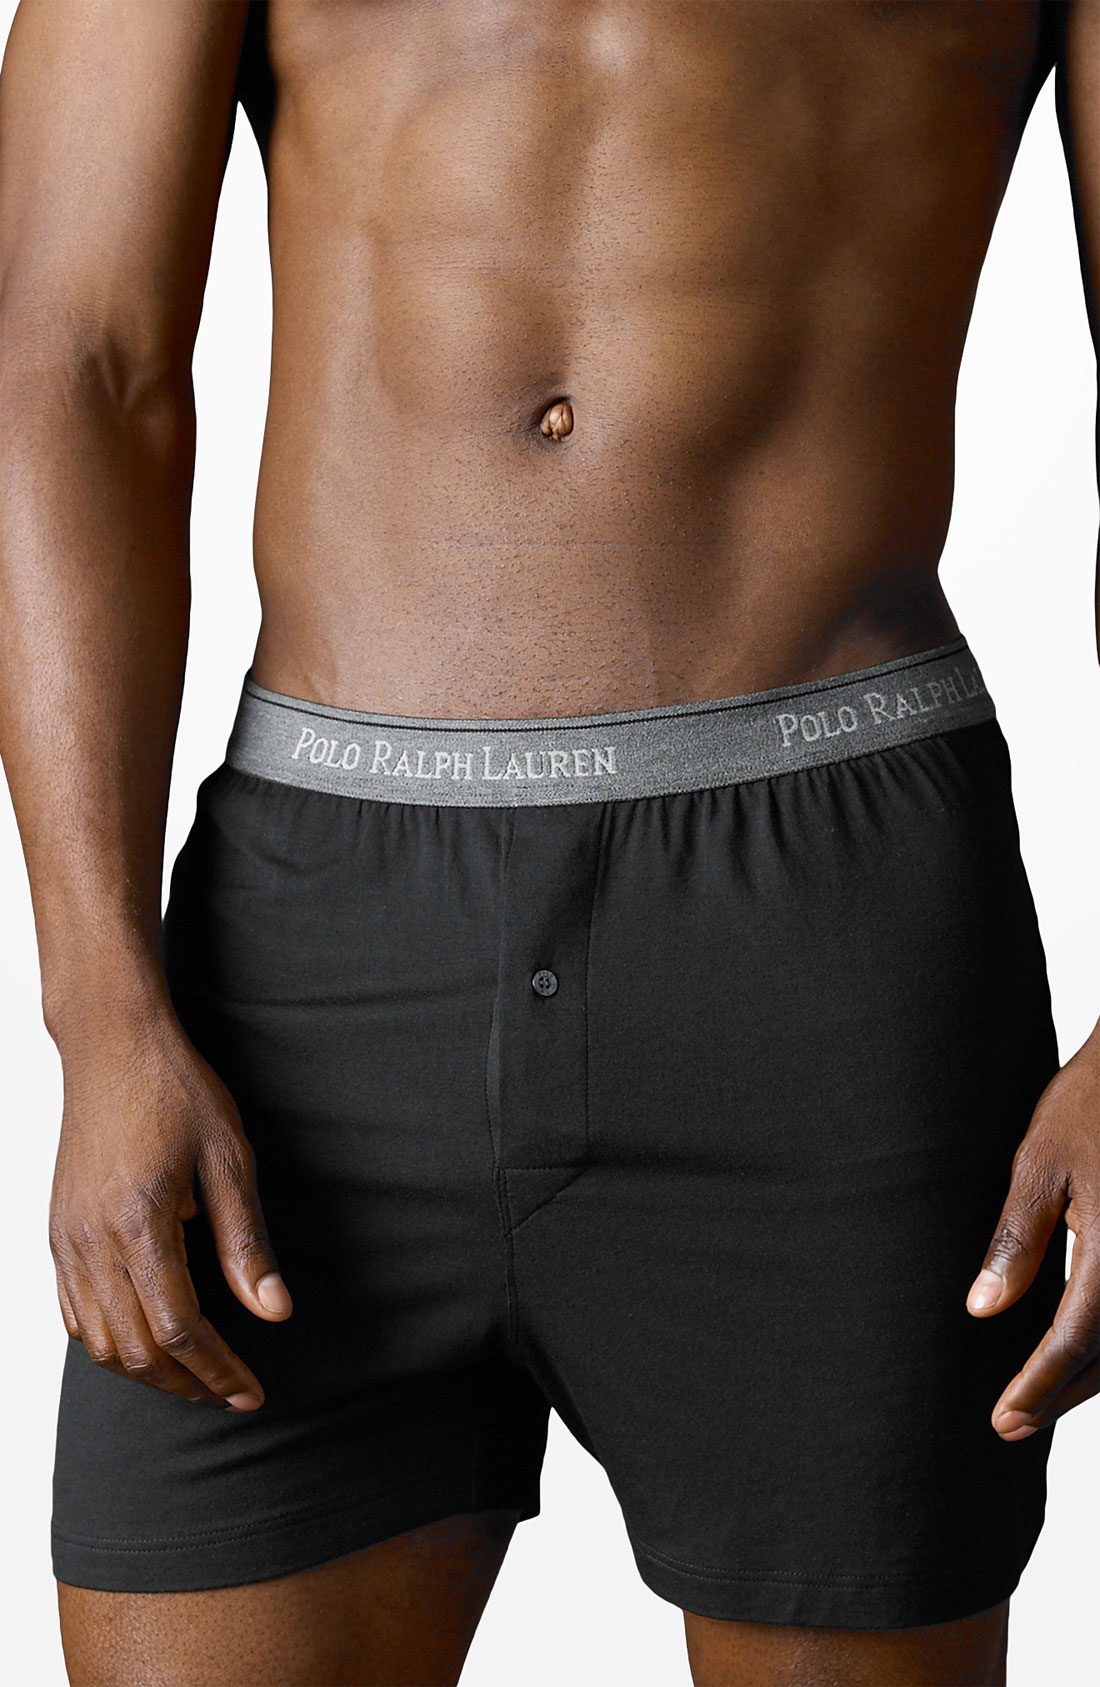 lyst polo ralph lauren boxer shorts in black for men. Black Bedroom Furniture Sets. Home Design Ideas